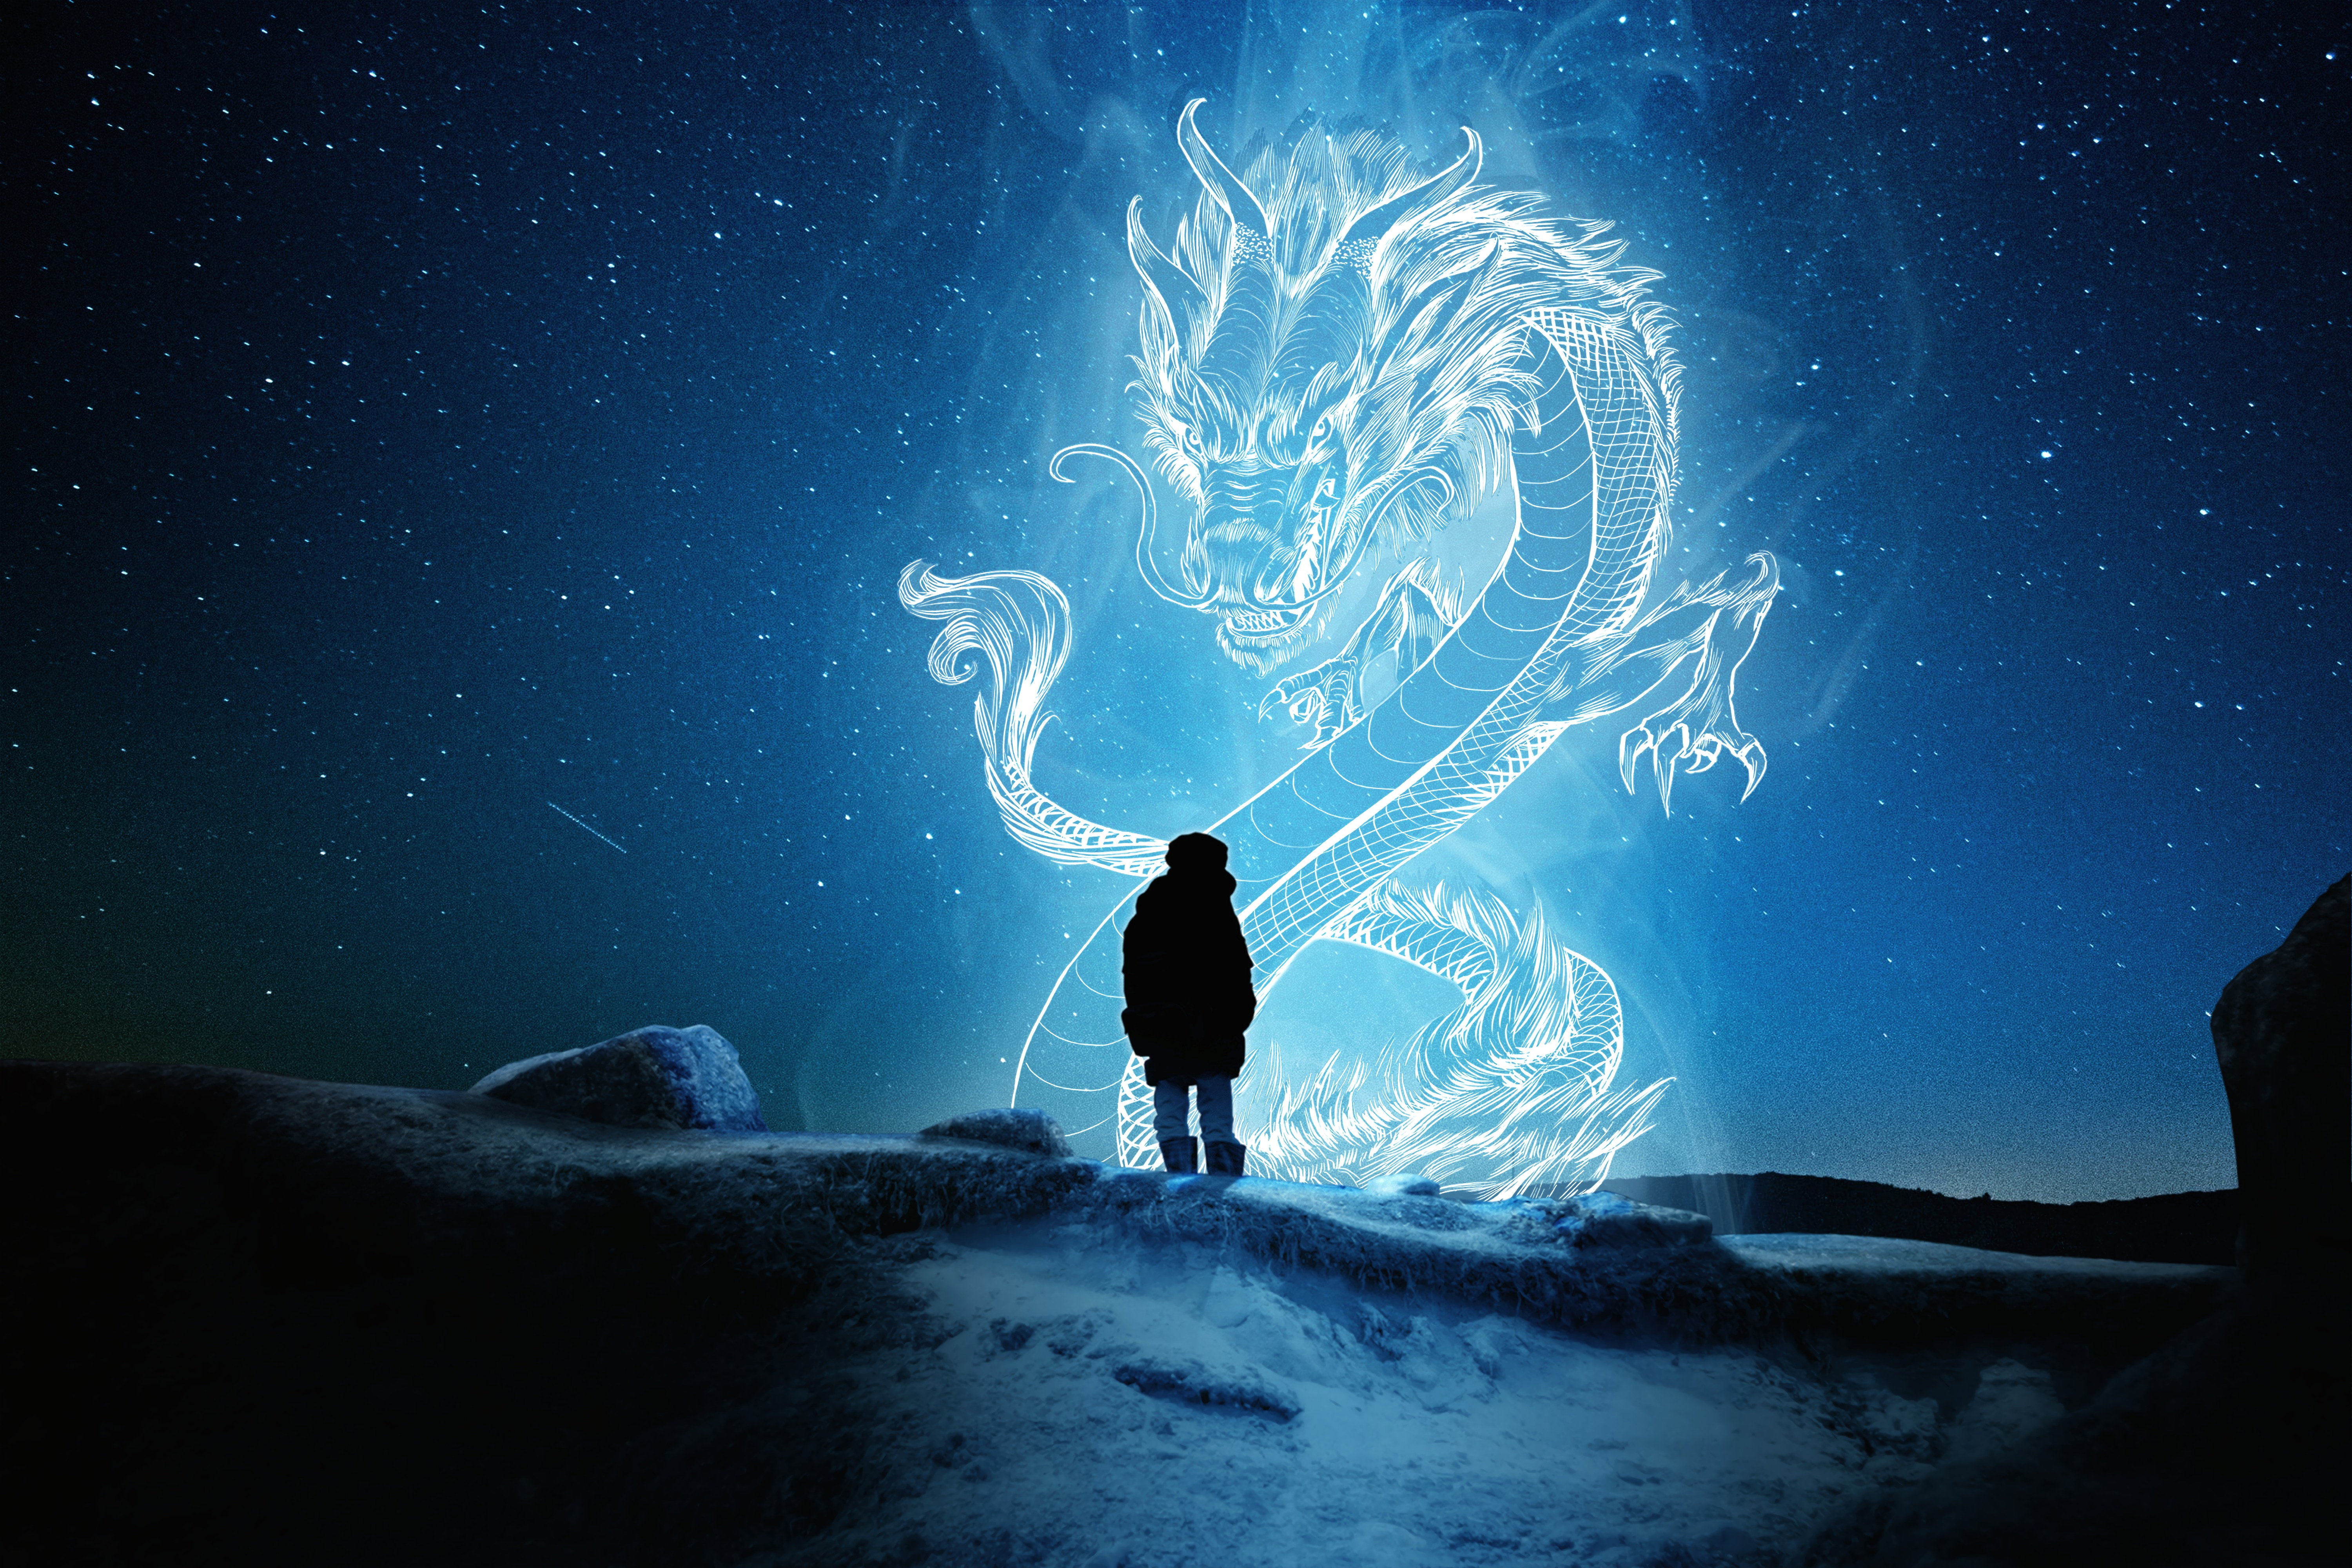 57407 download wallpaper Silhouette, Dragon, Illusion, Art screensavers and pictures for free